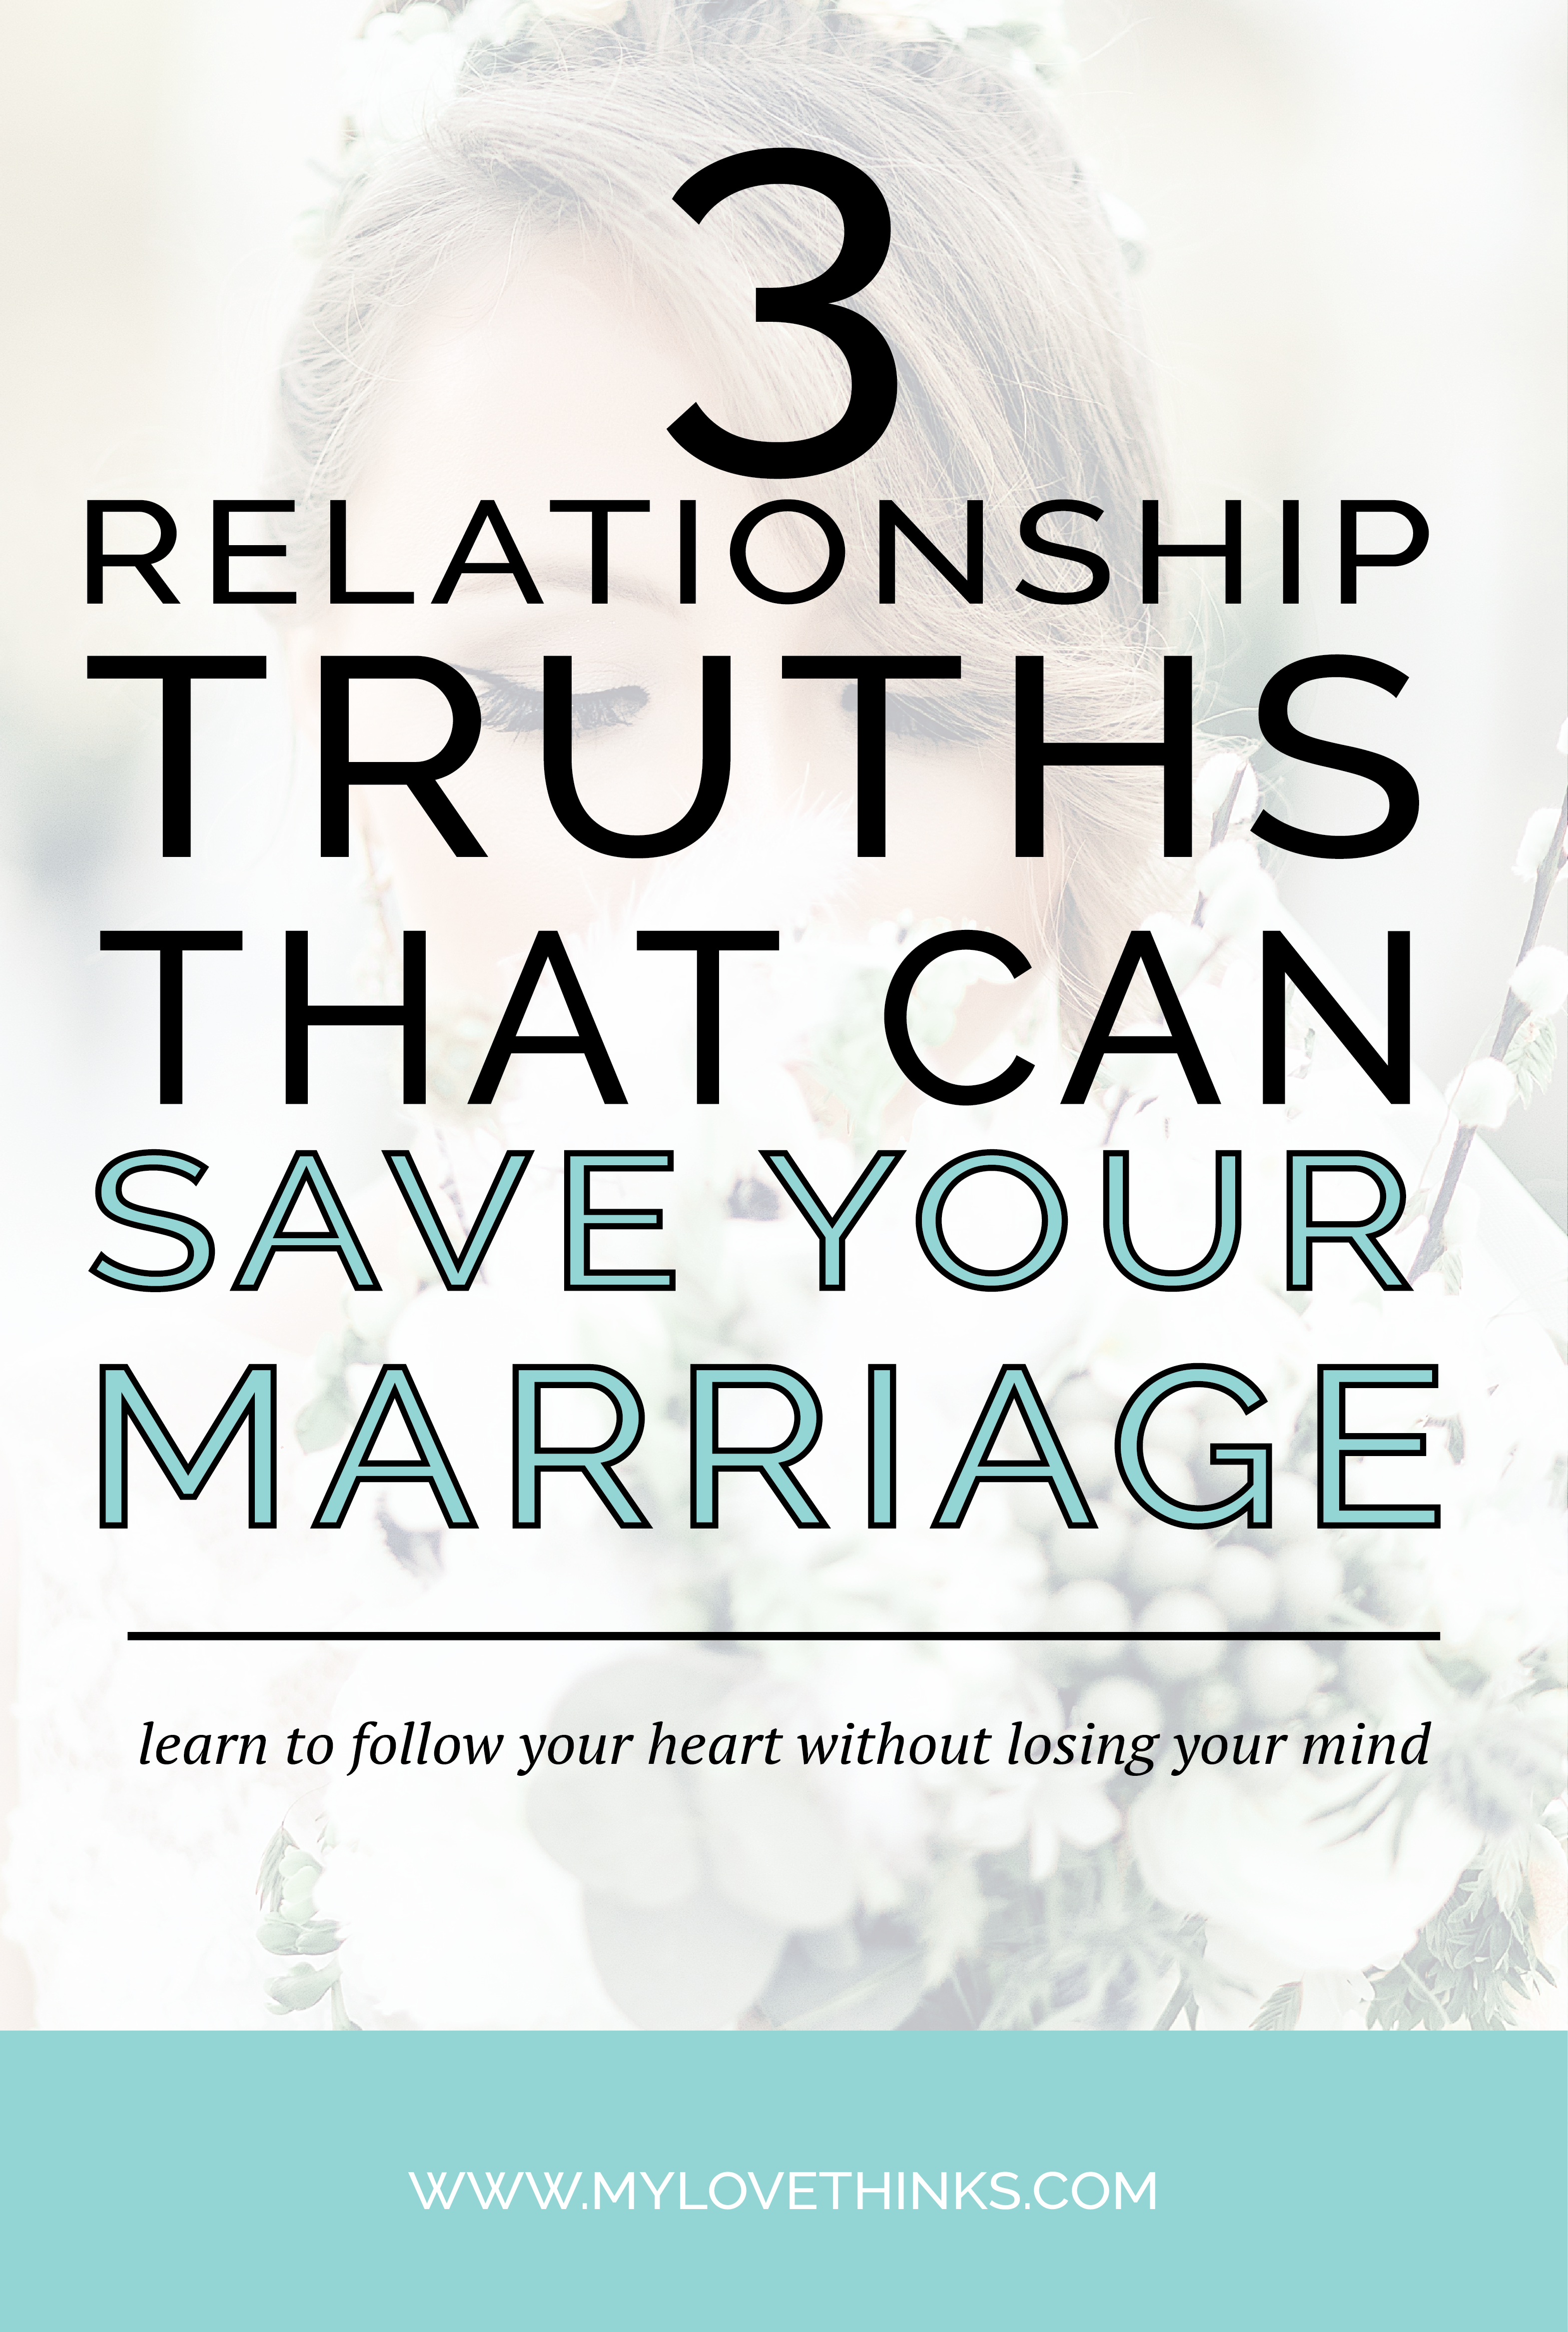 3 relationship truths that can save your marriage